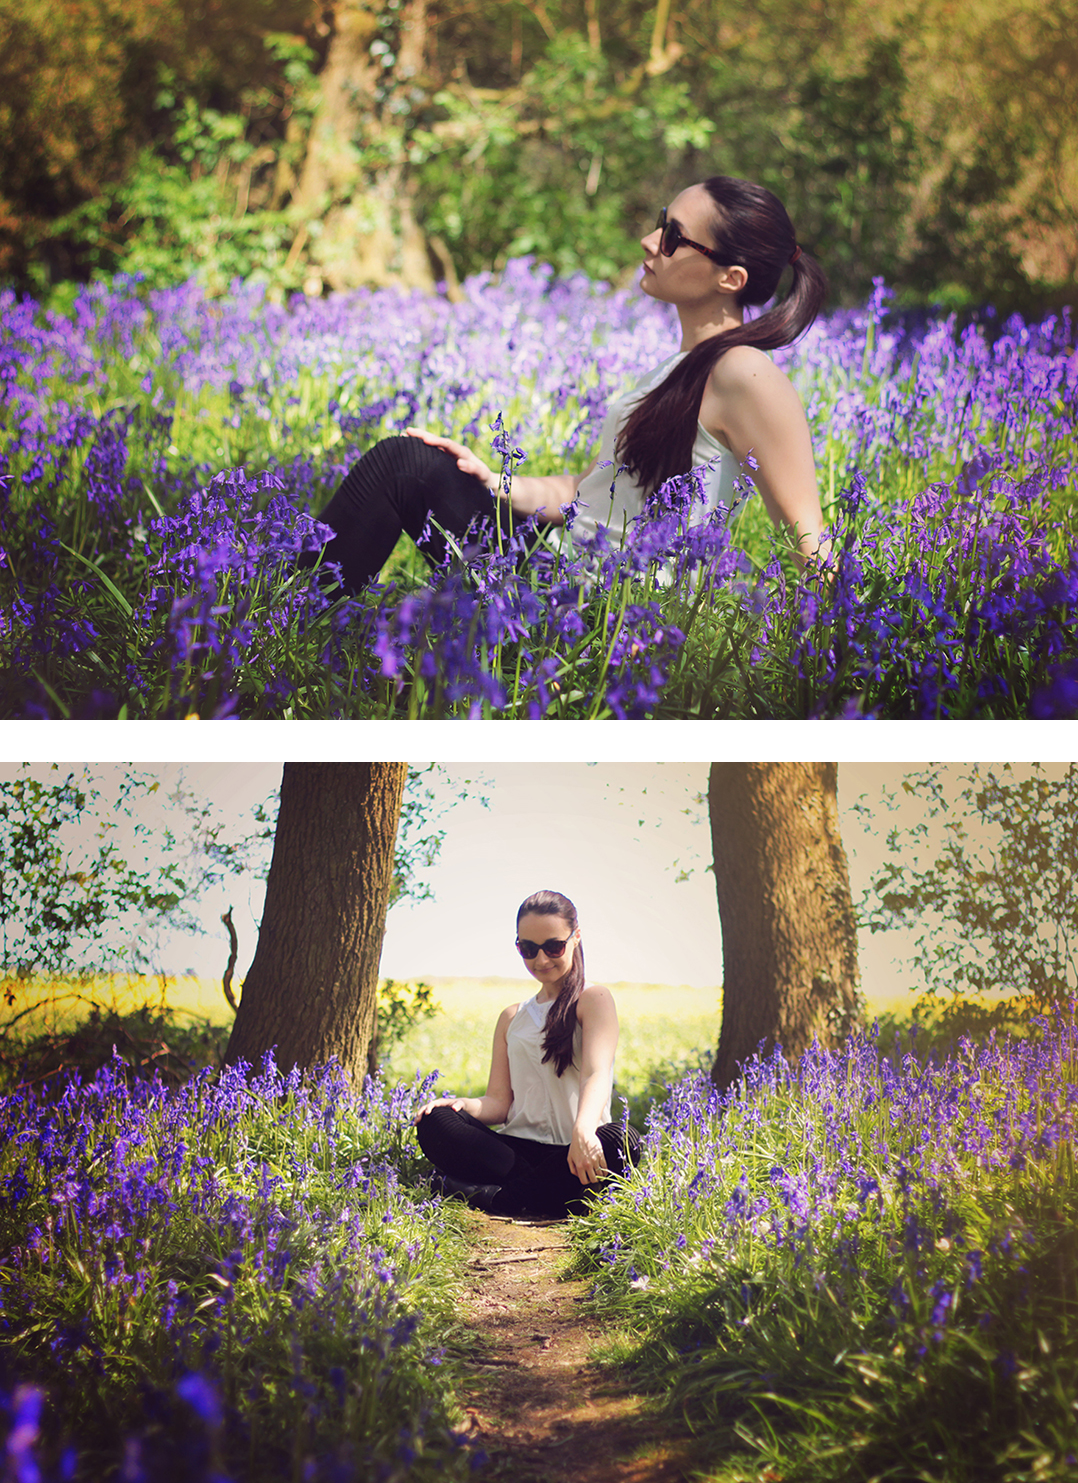 Bluebell photoshoot